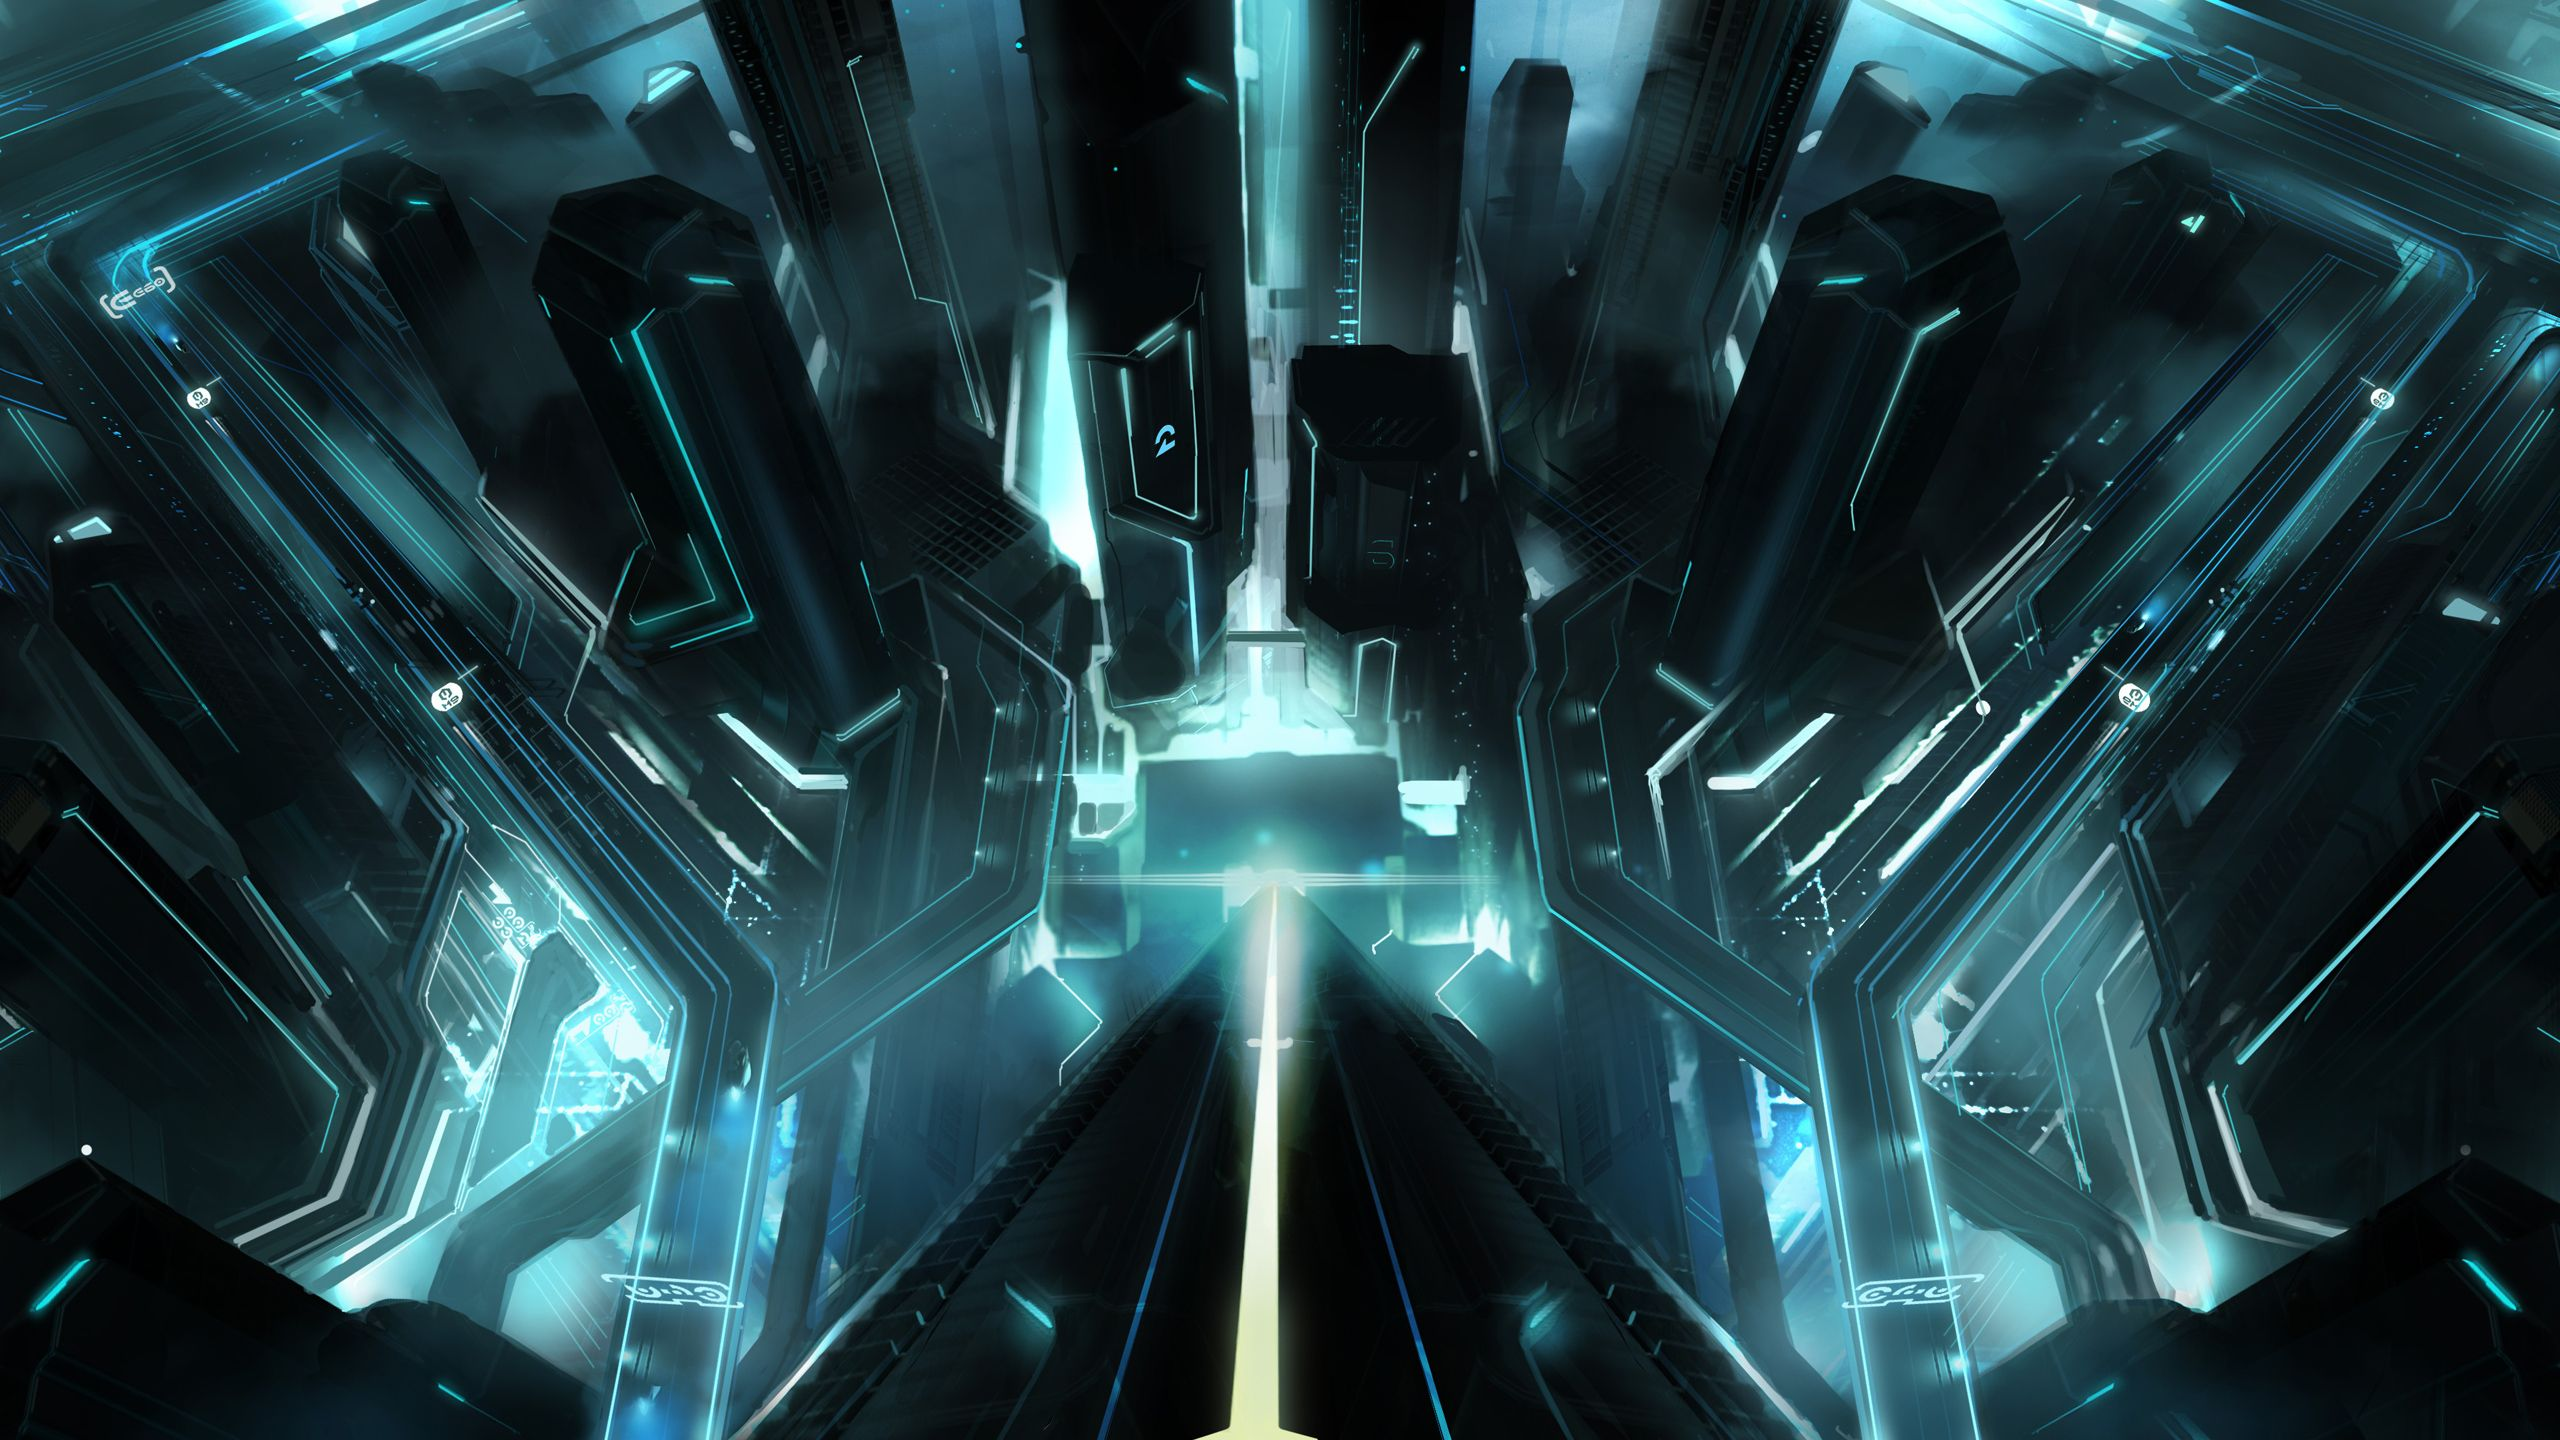 Tron Science Fiction Cities Wallpaper 1 2560x